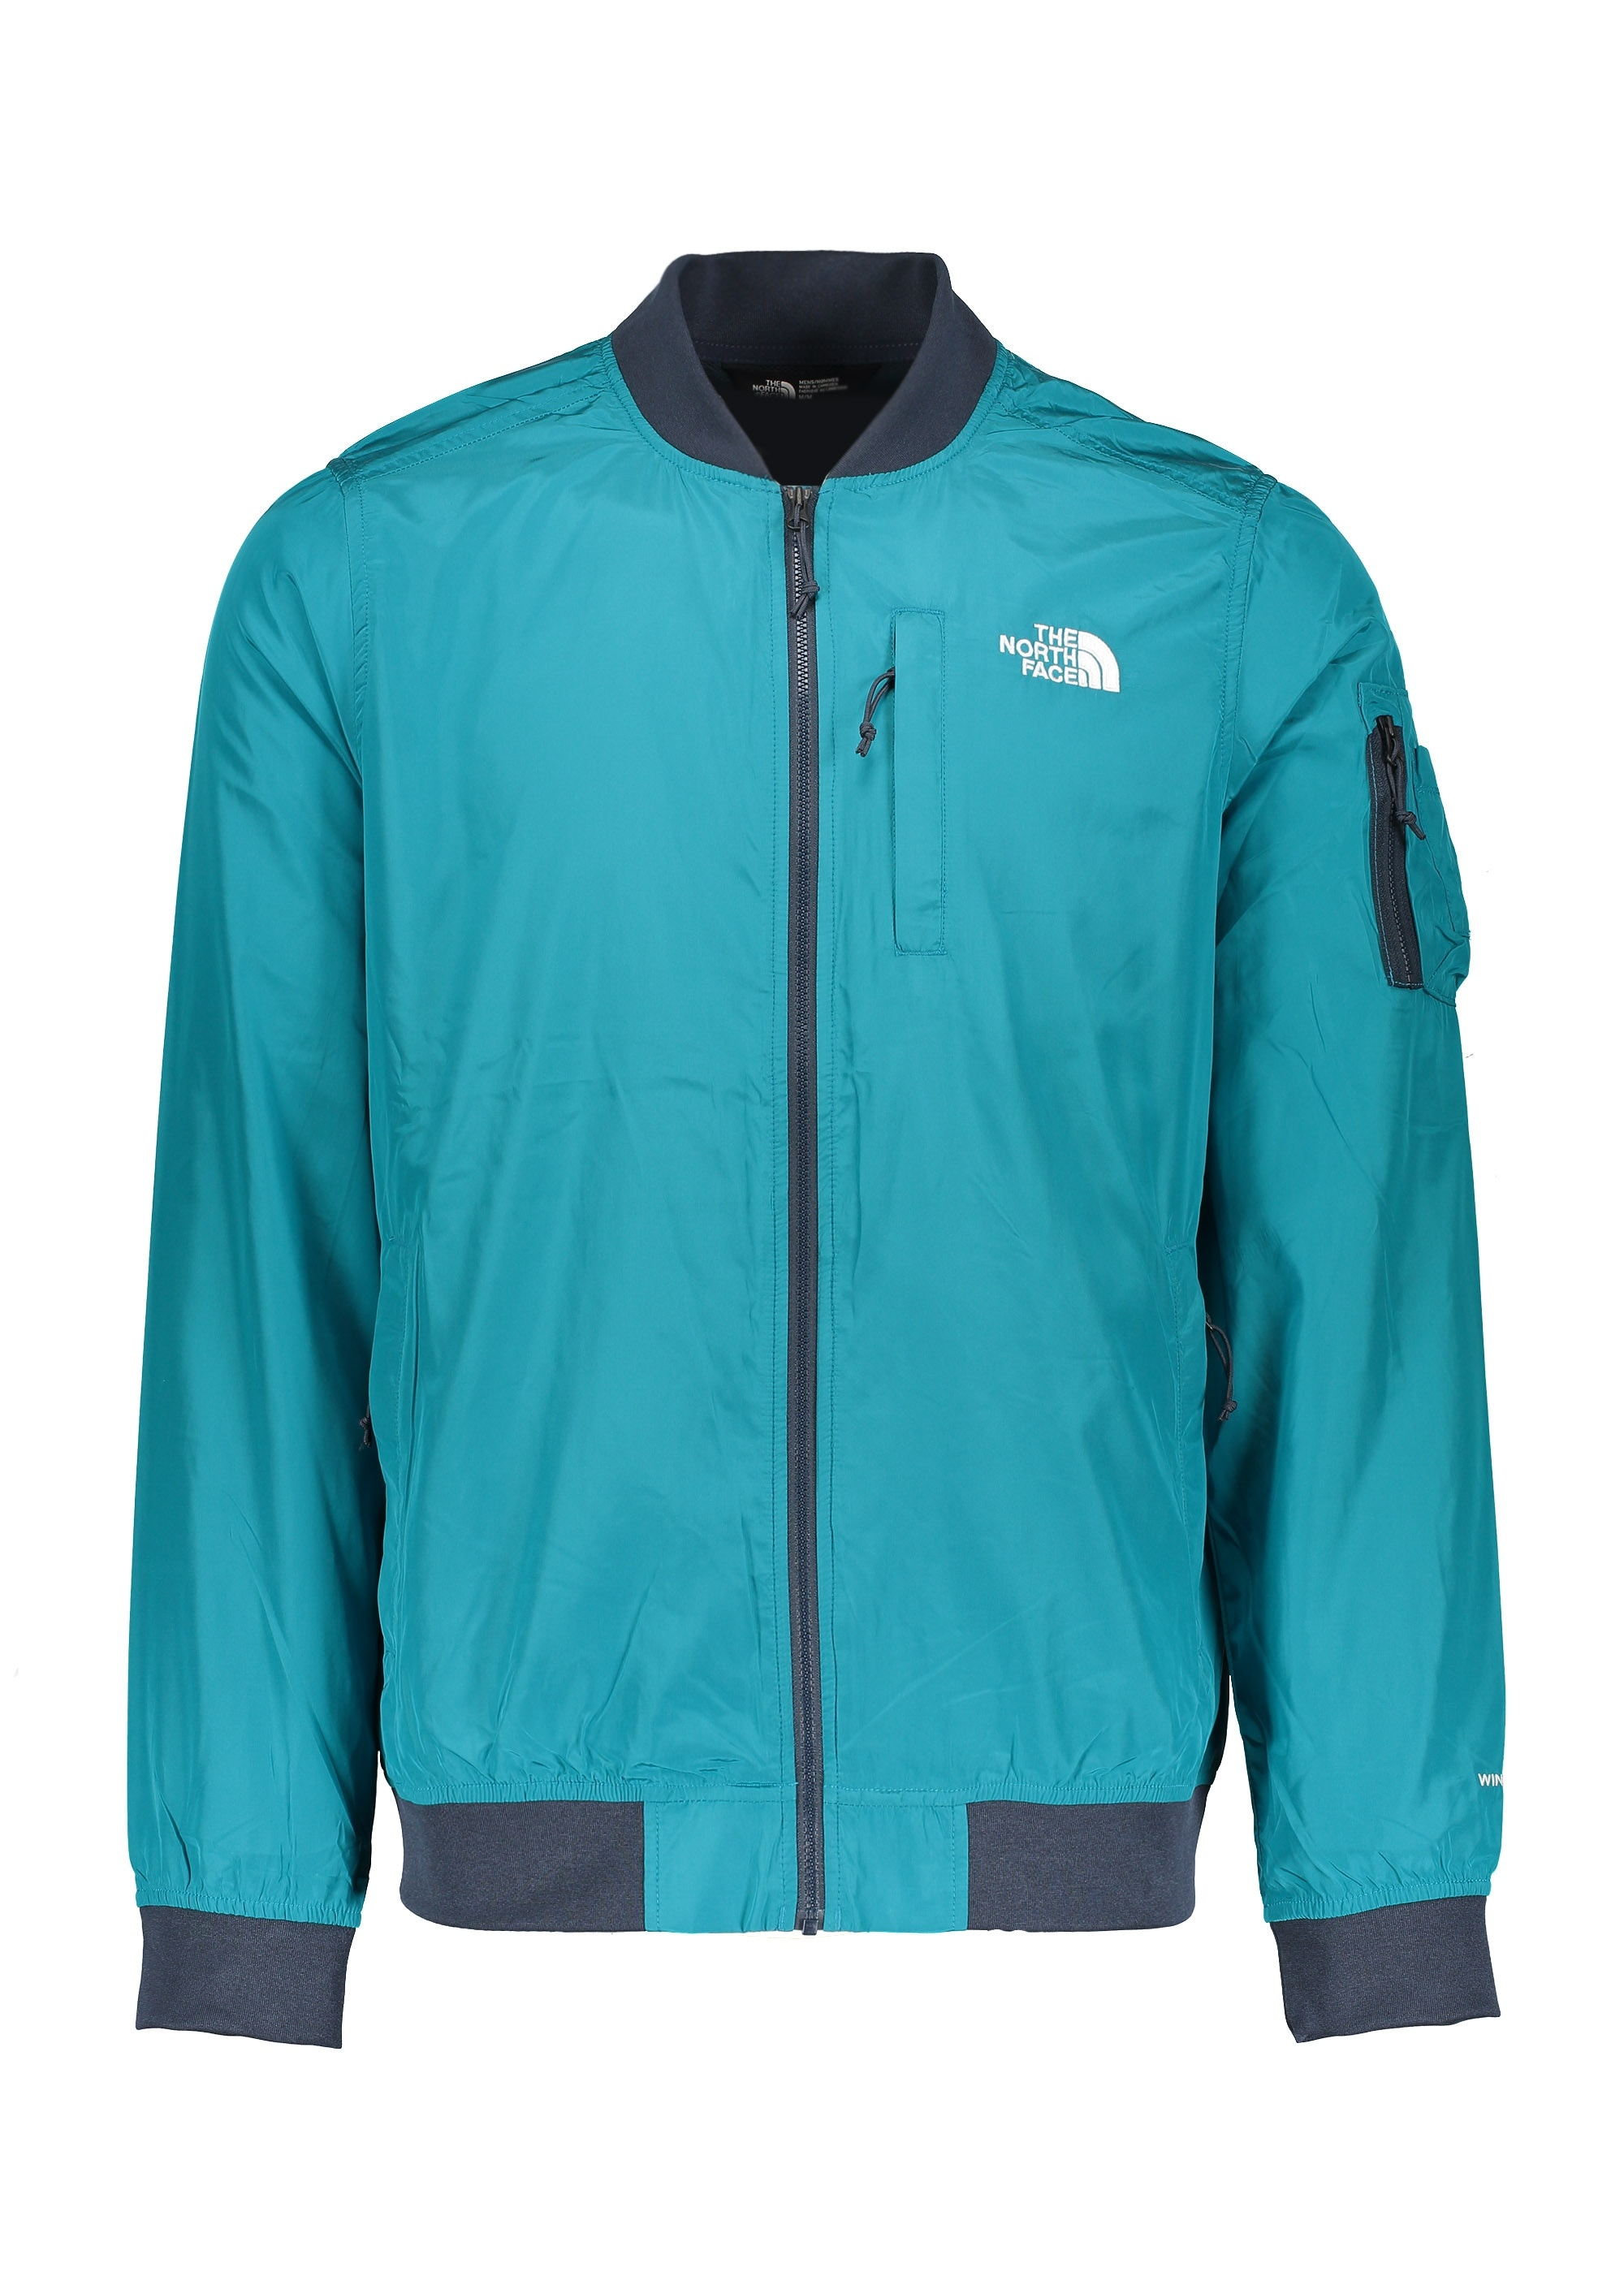 cae024913 The North Face Meaford Bomber - Crystal Teal